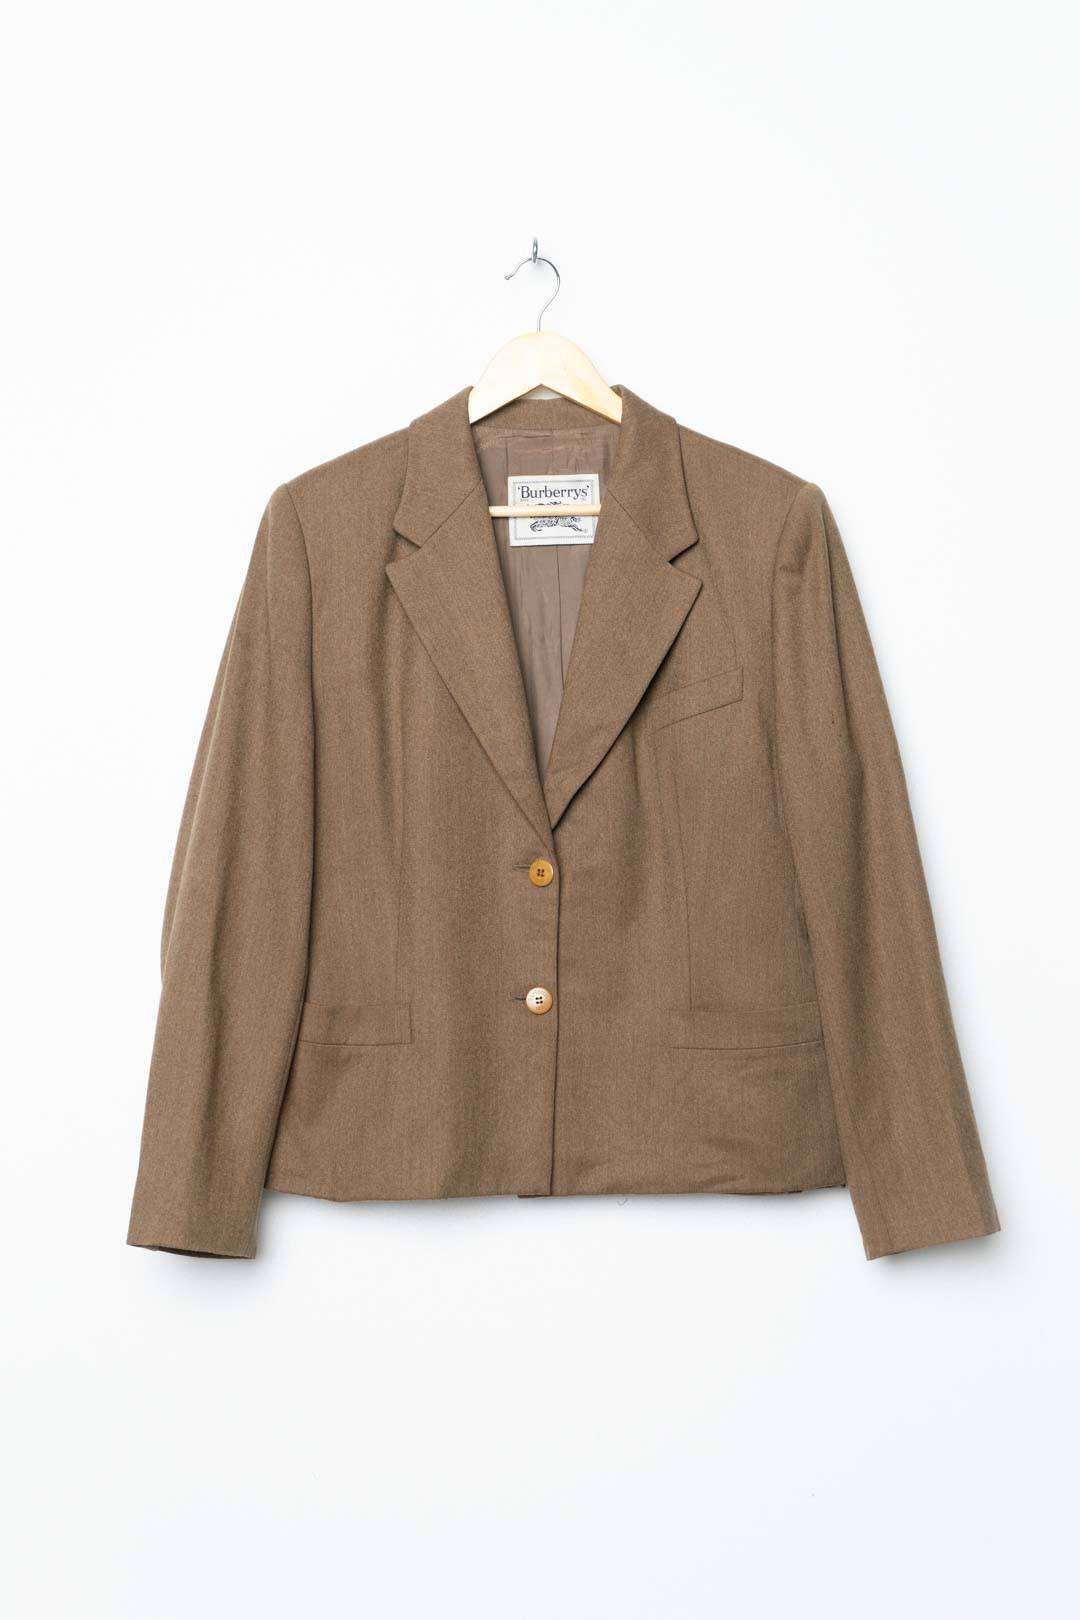 Beige Brown Burberry Blazer Small Stains L - VinoKilo.com